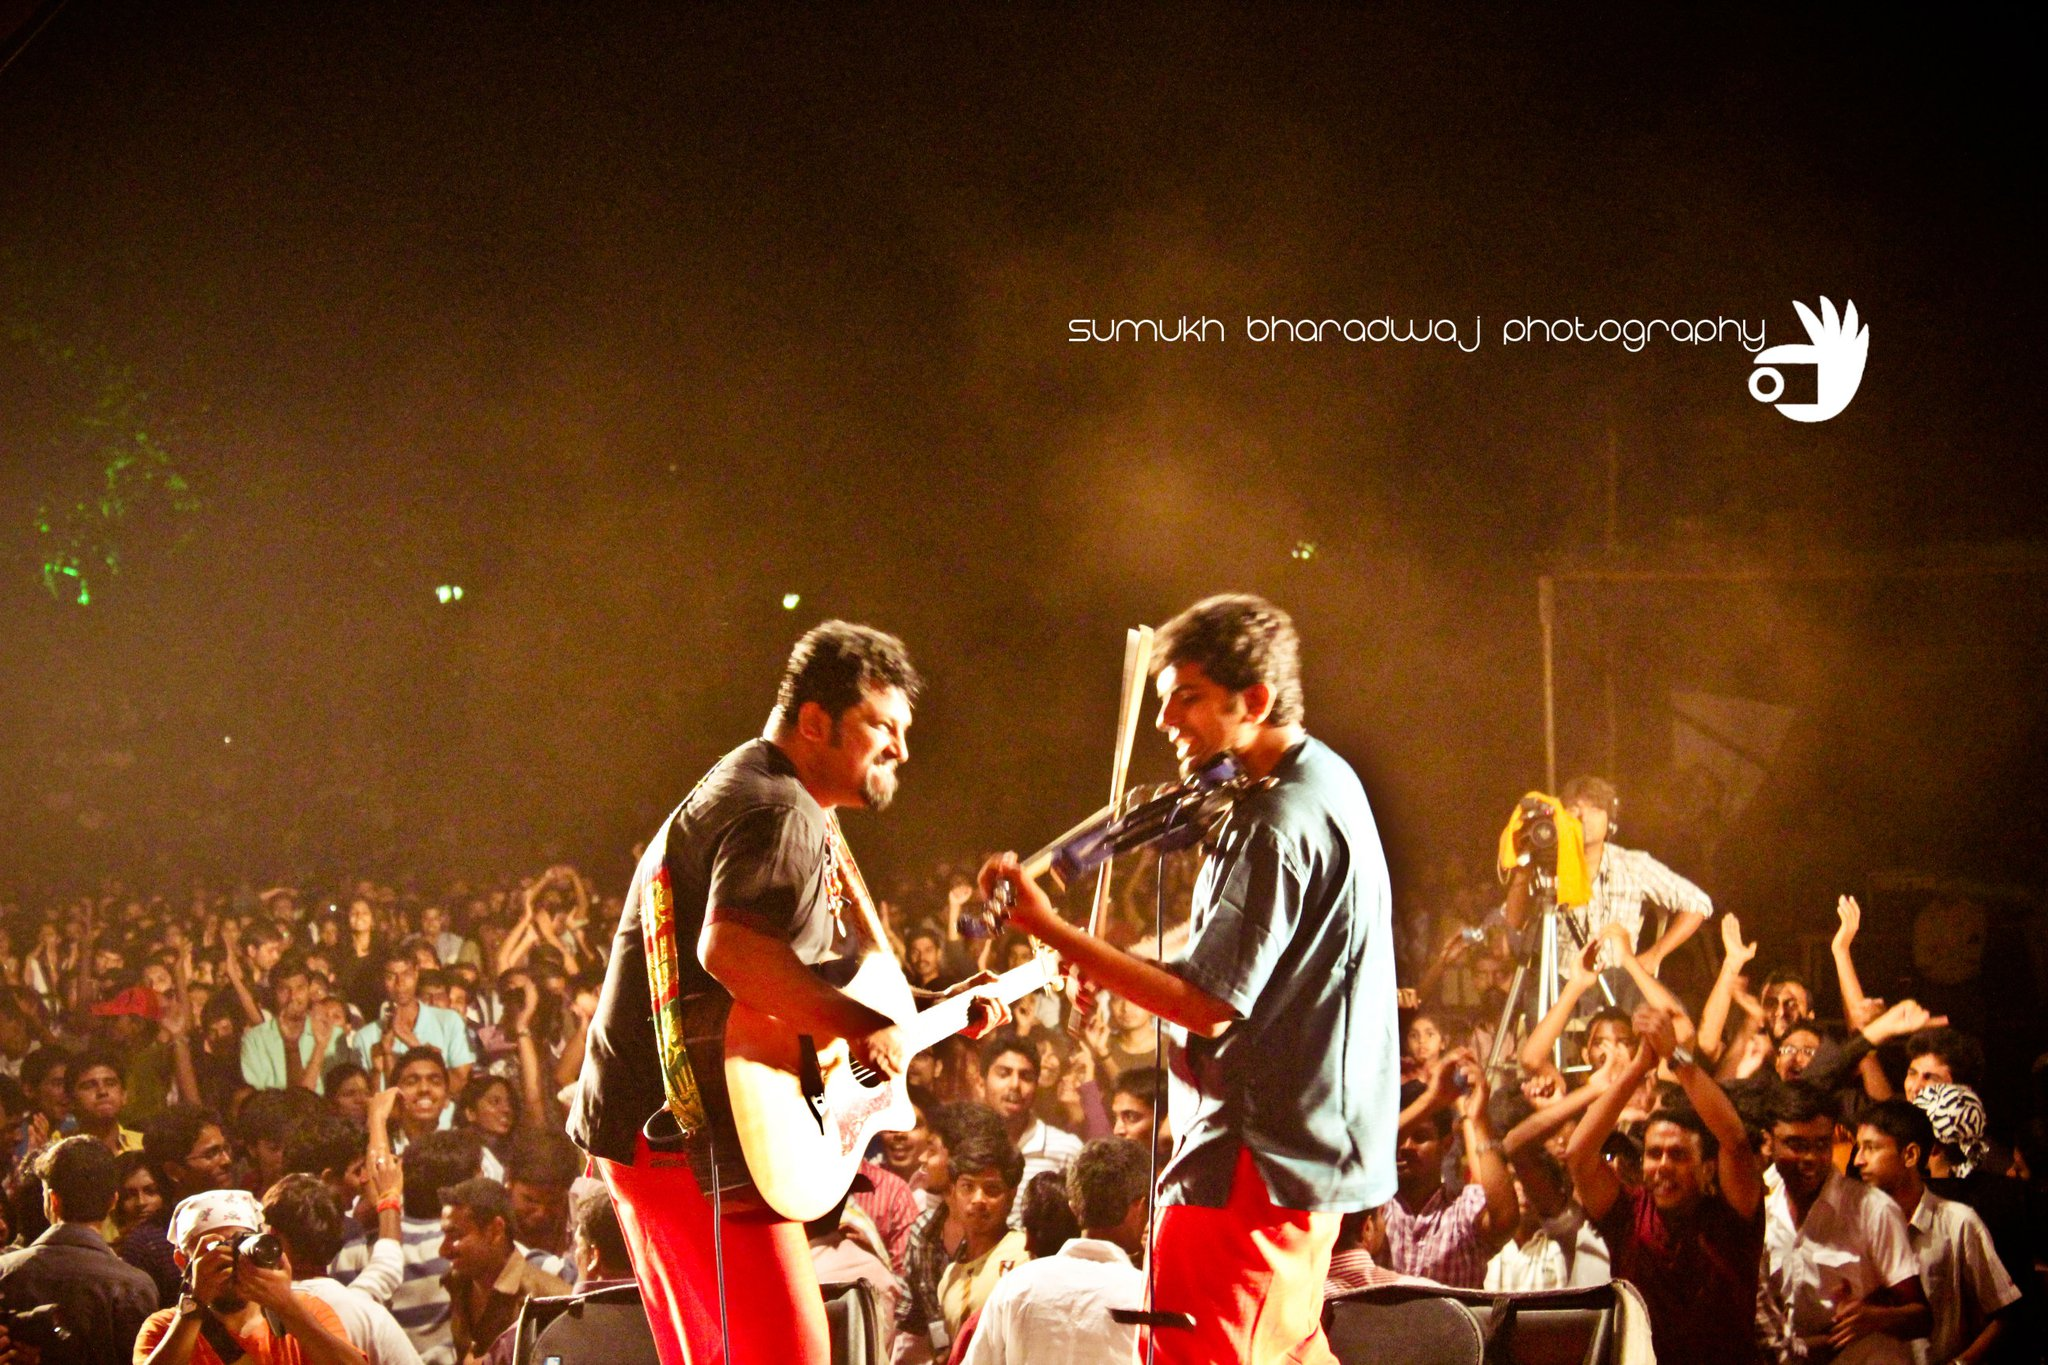 Karthick Iyer and Raghu Dixit